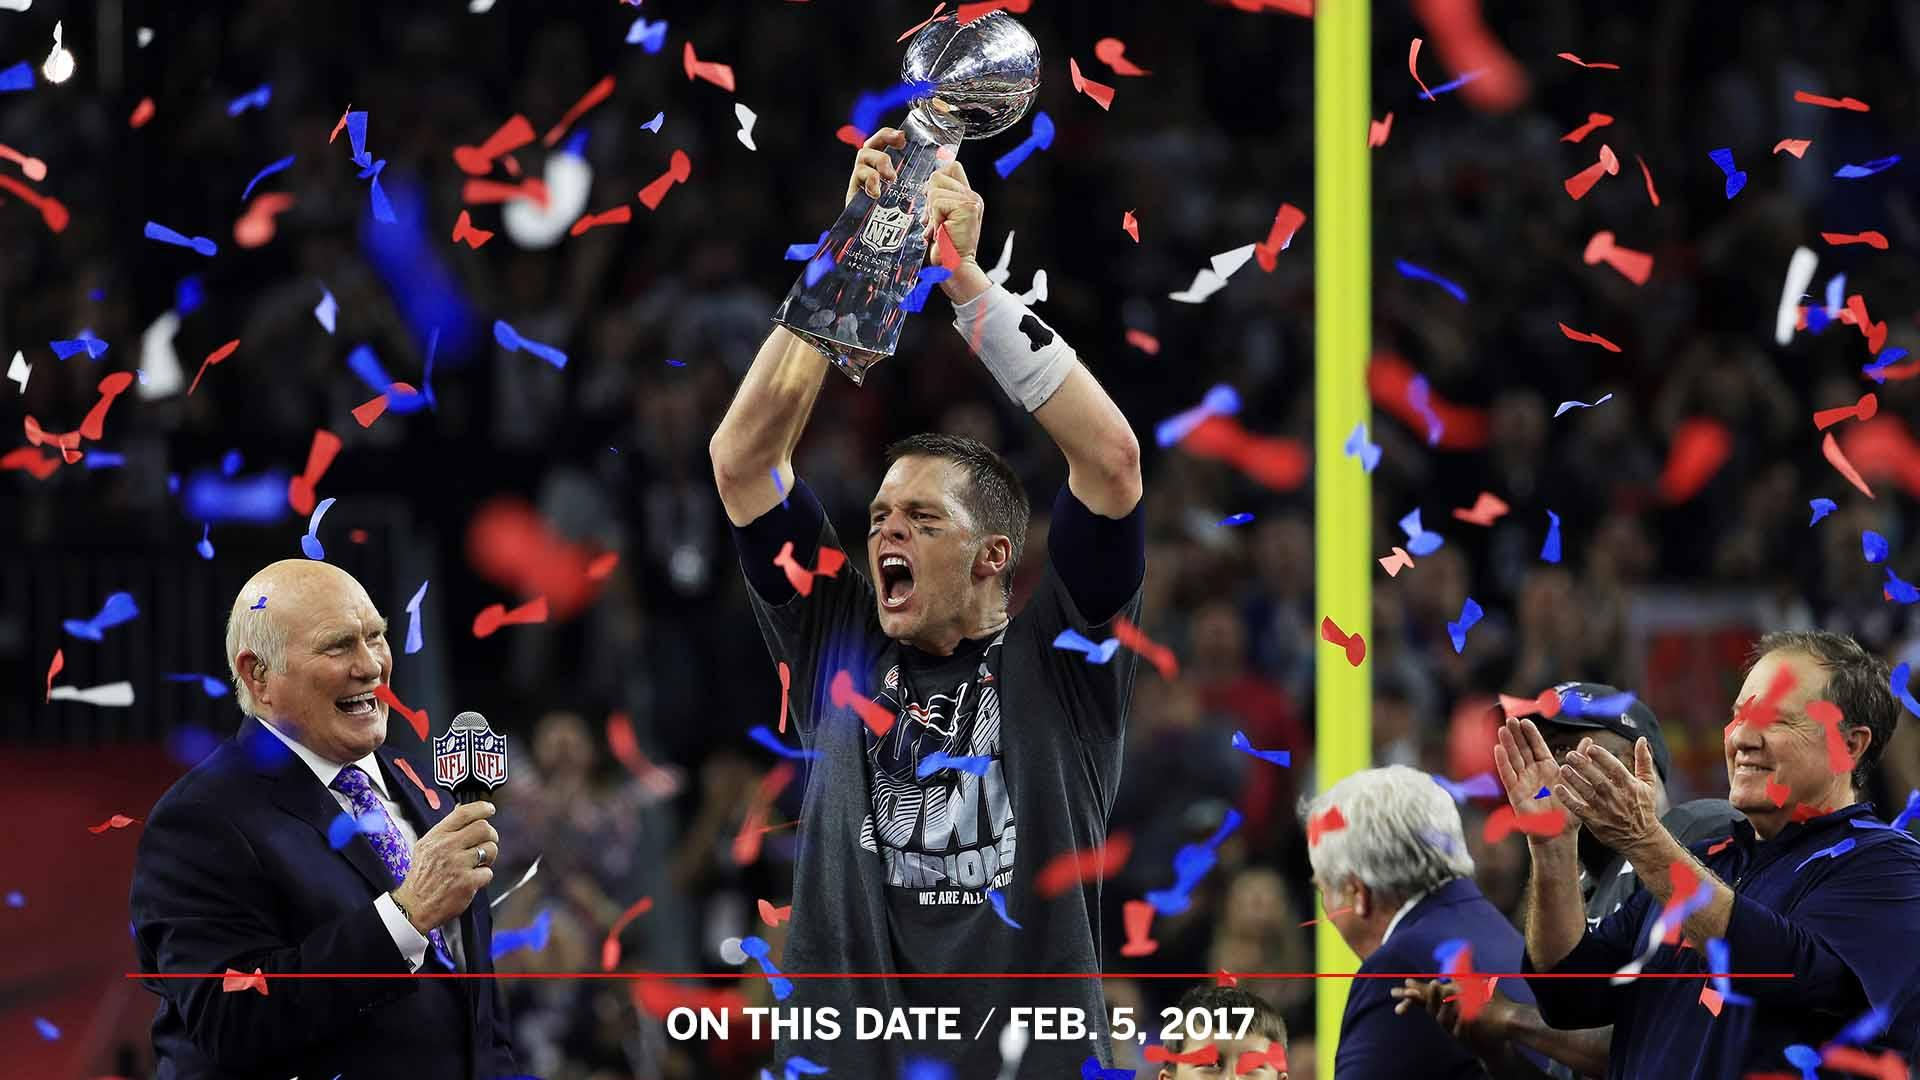 28-3. Brady's 5th ring.  2 years ago today, the Patriots completed an epic comeback to win Super Bowl LI. https://t.co/esBBD5vOXB